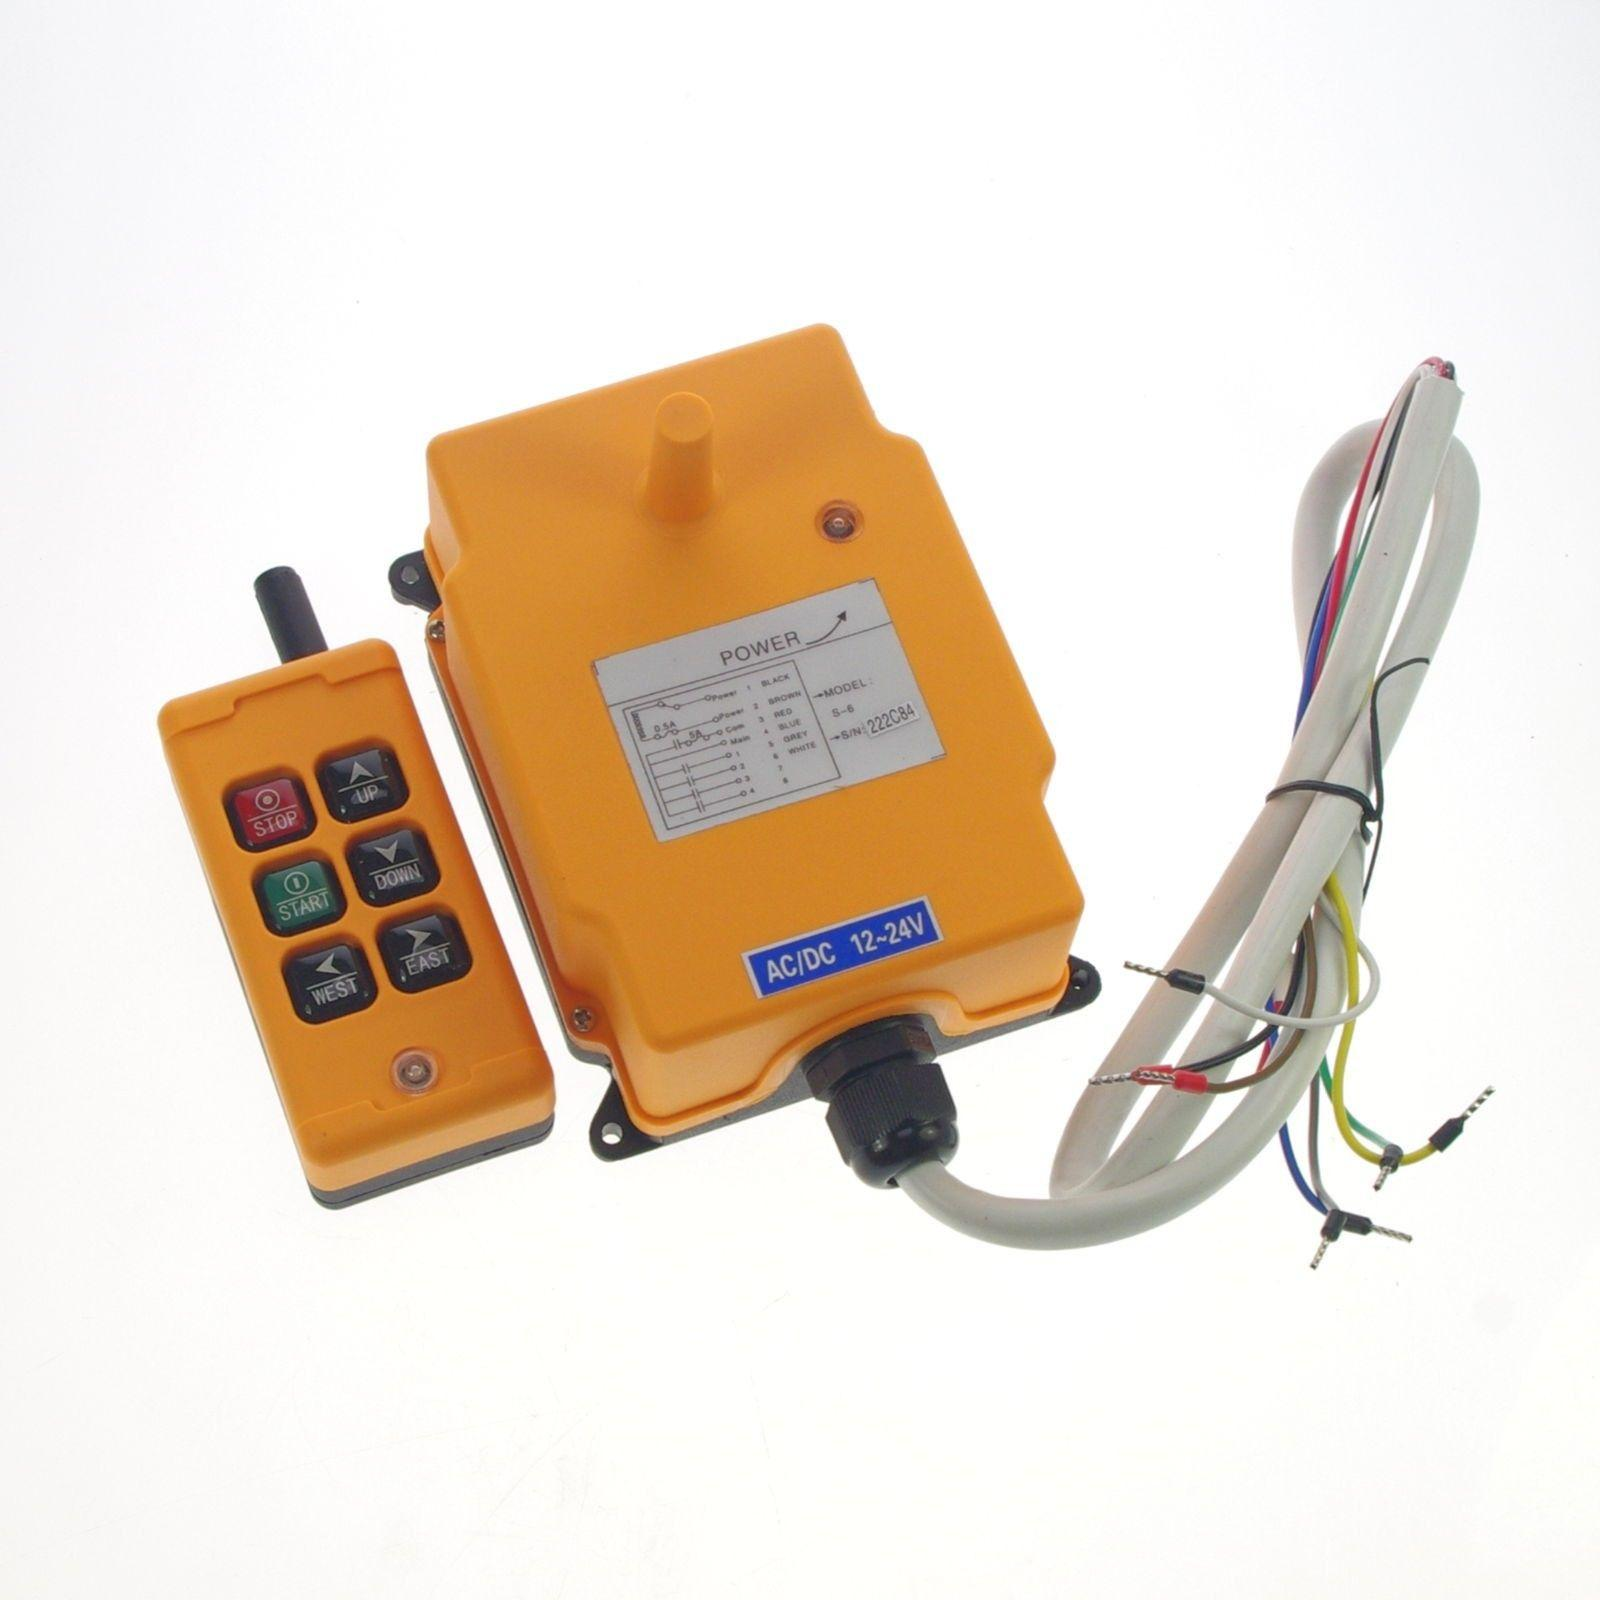 12V-415V 6 Channels 1 Speed 1 Transmitter Hoist Crane Truck Radio Remote System Controller CE цена